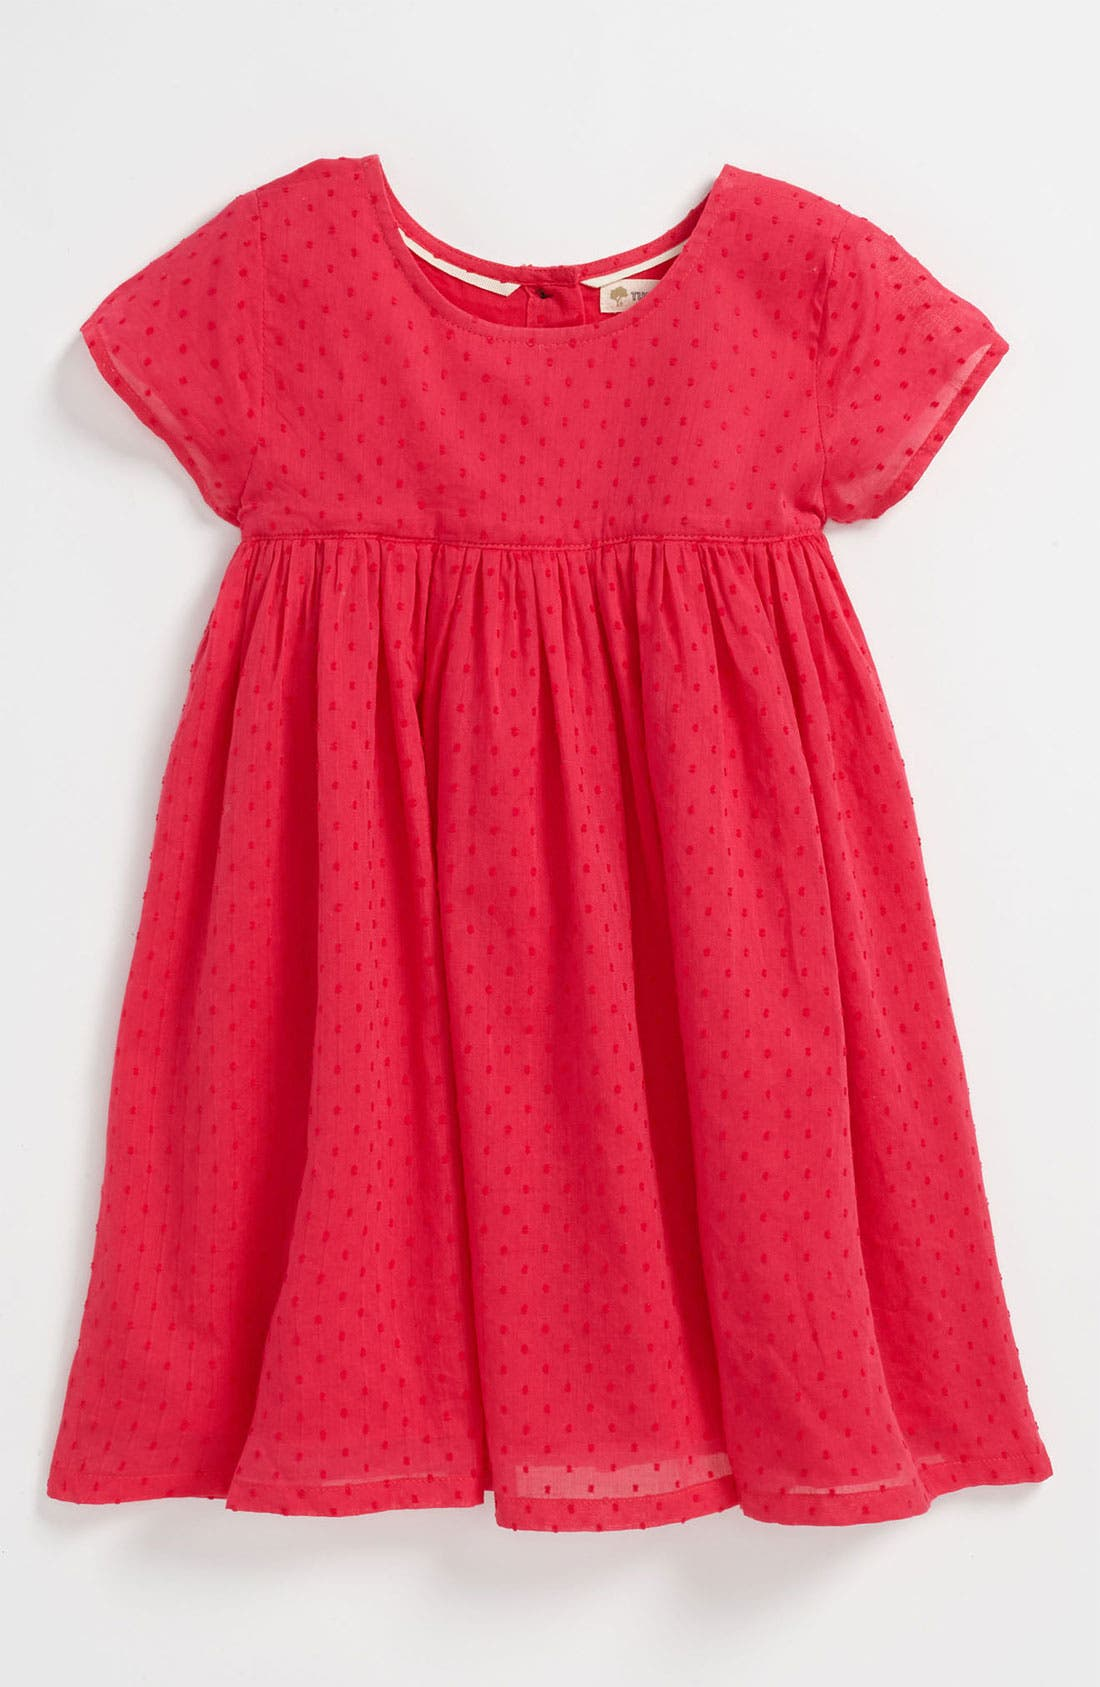 Main Image - Tucker + Tate 'Iris' Dress (Toddler)